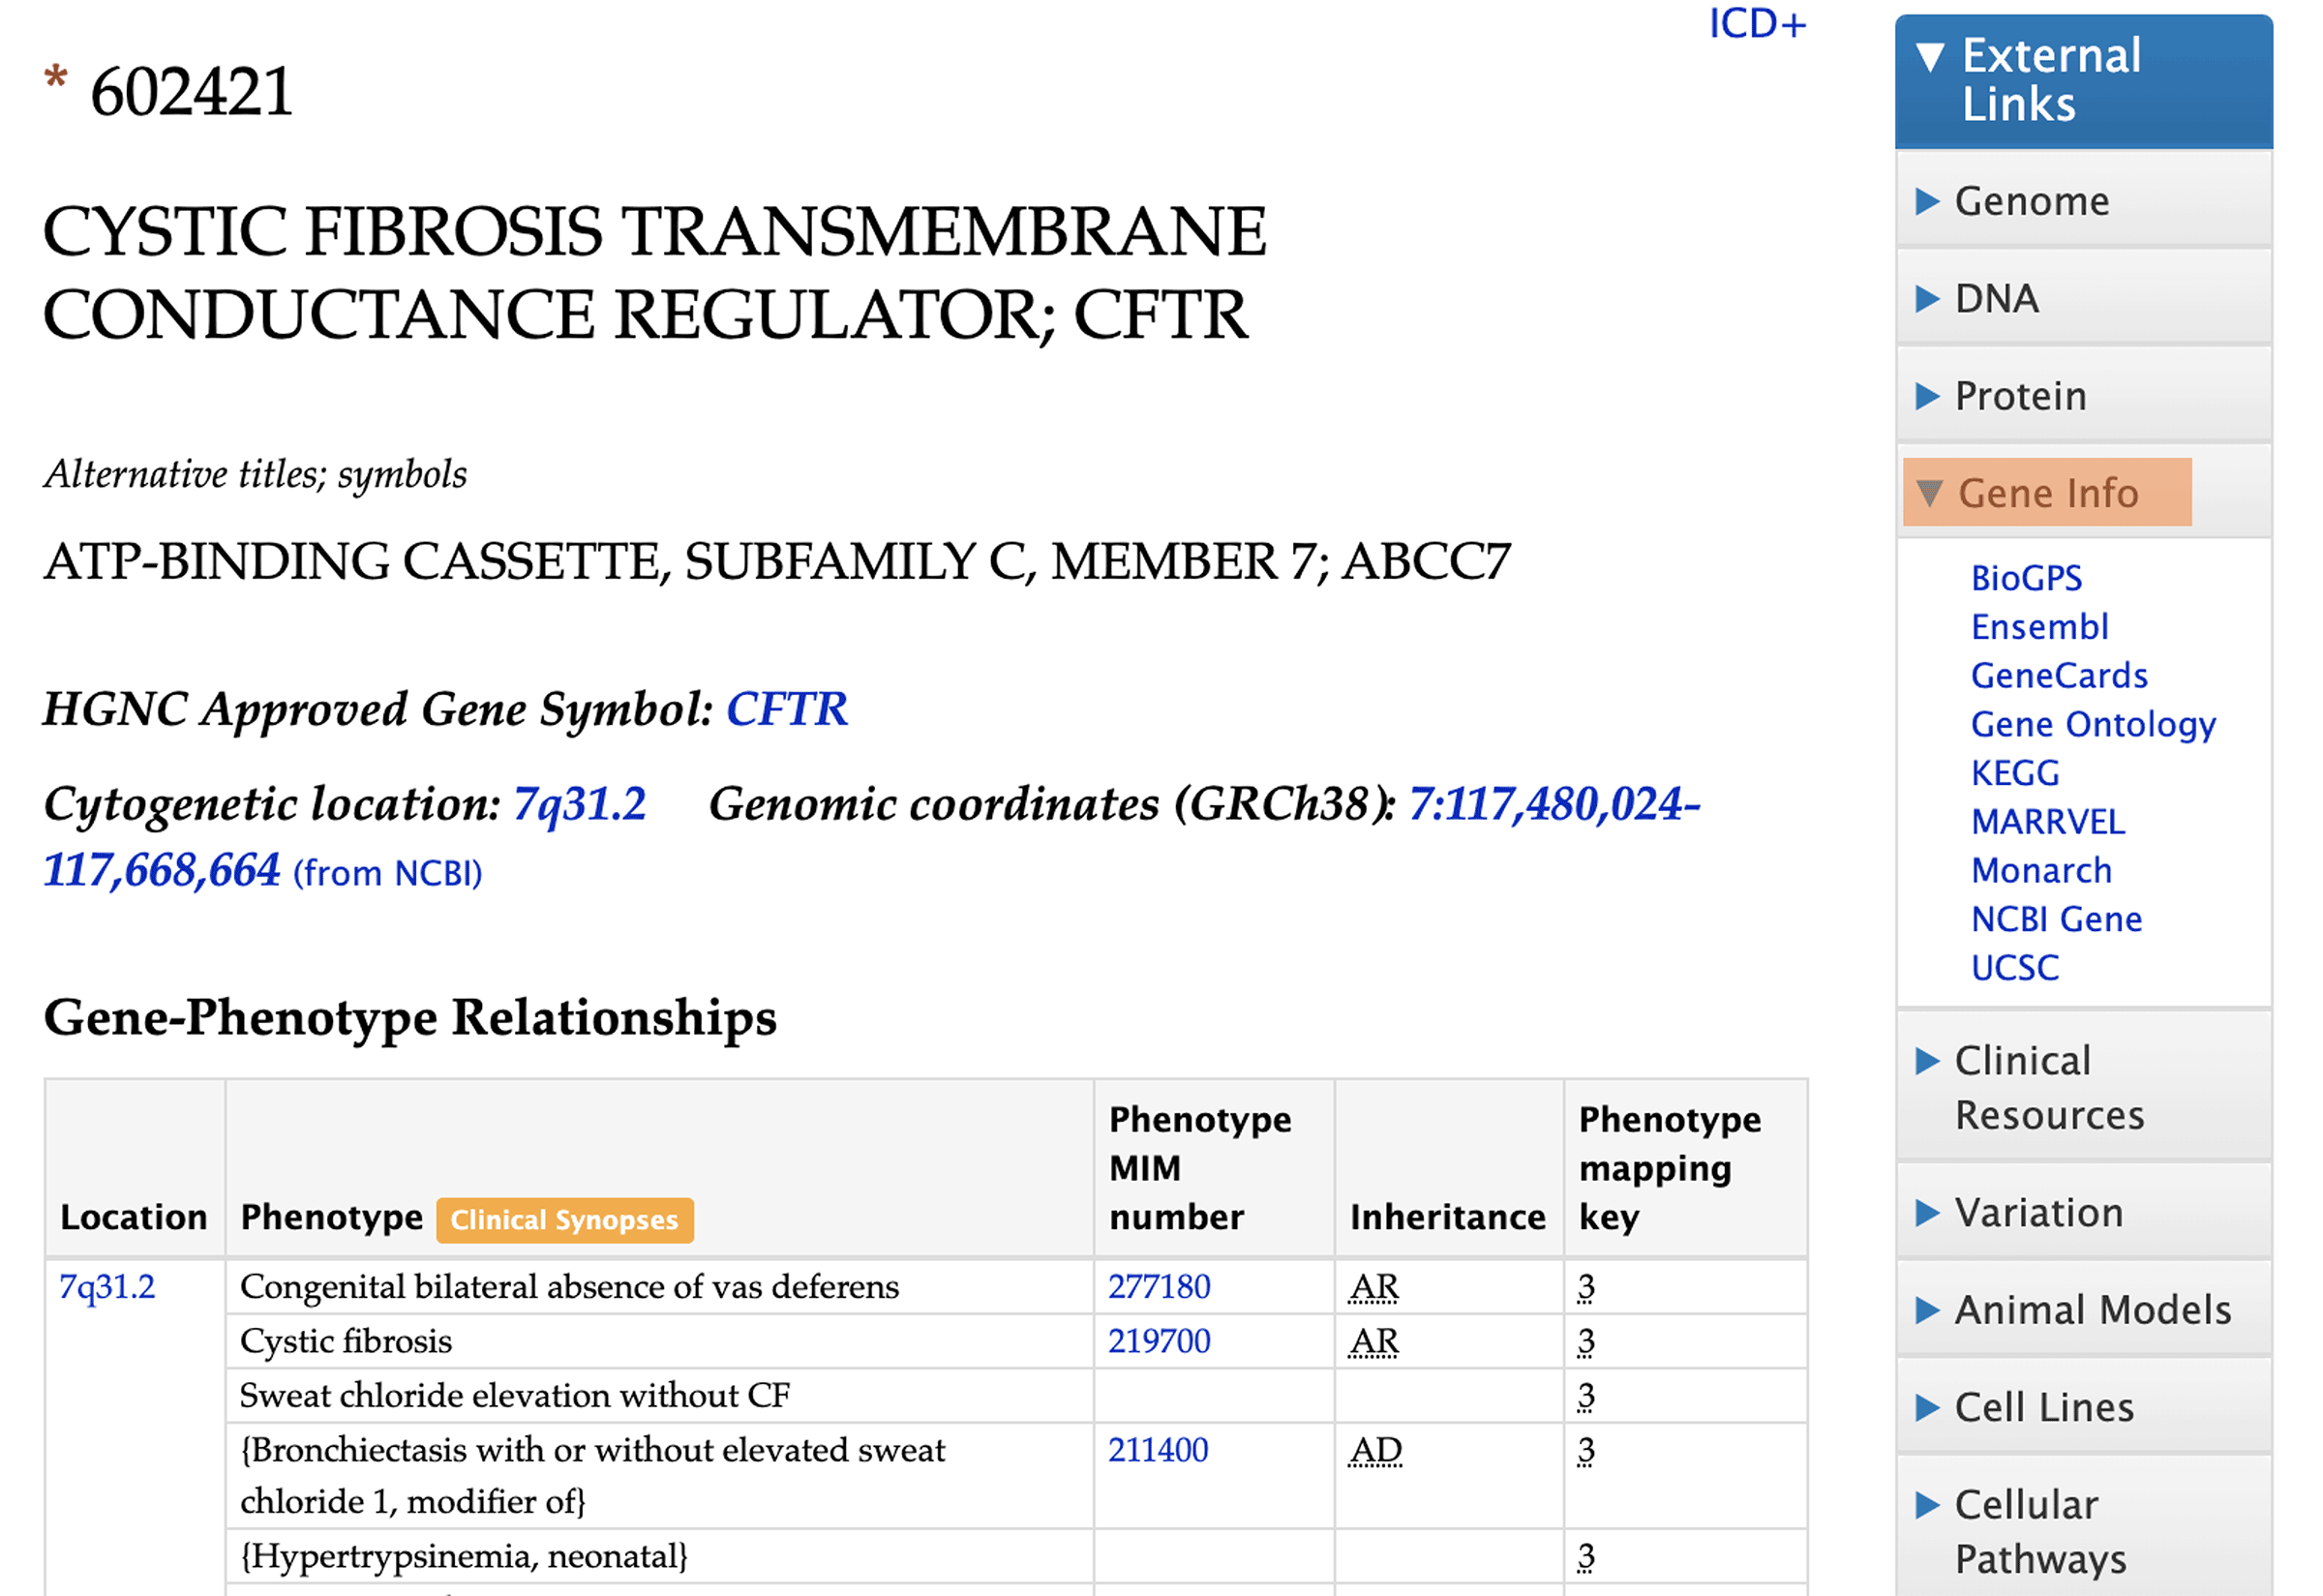 Screenshot of the gene page for cystic fibrosis on the OMIM website